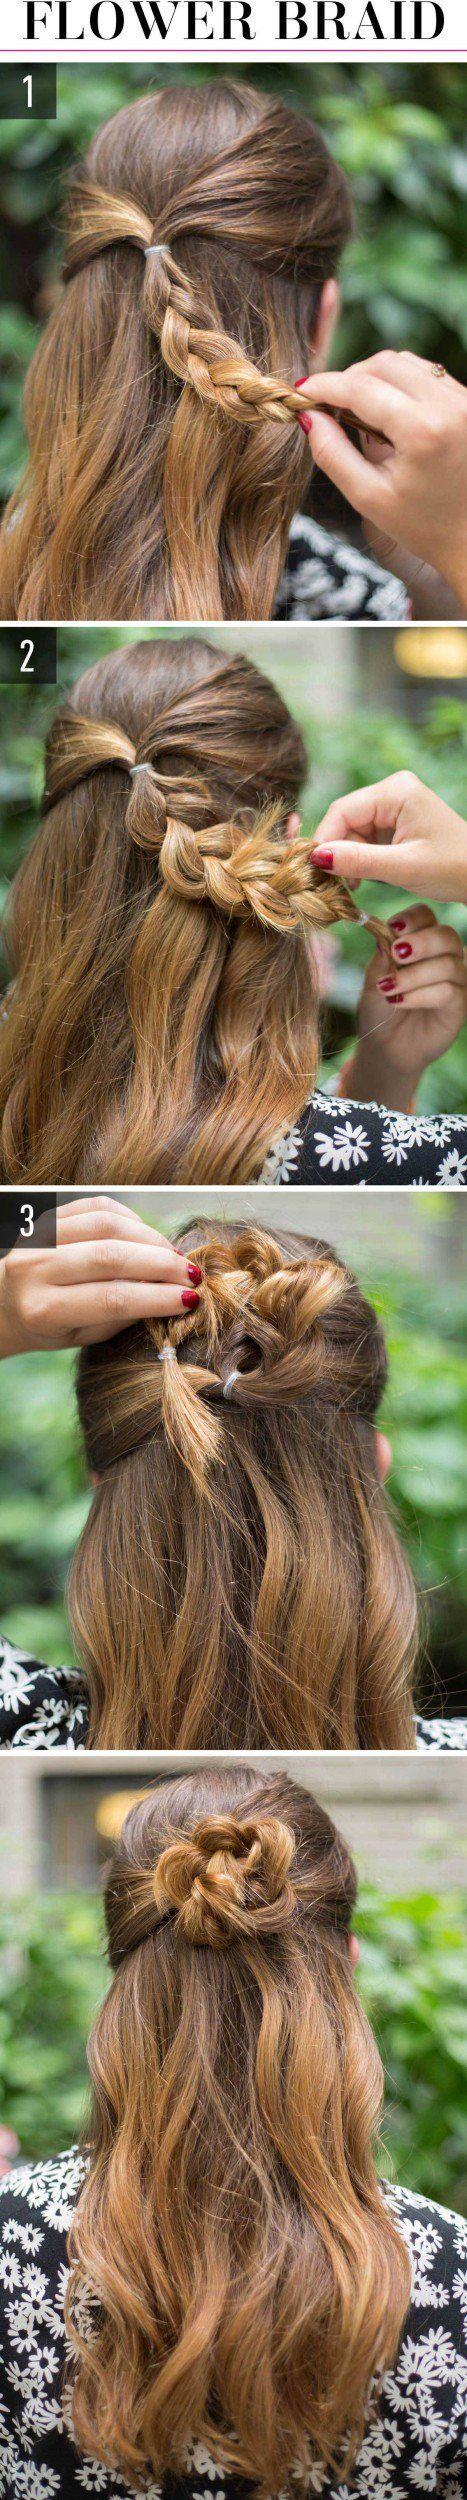 Best hairstyles easy hairstyles something new get ready the mirror